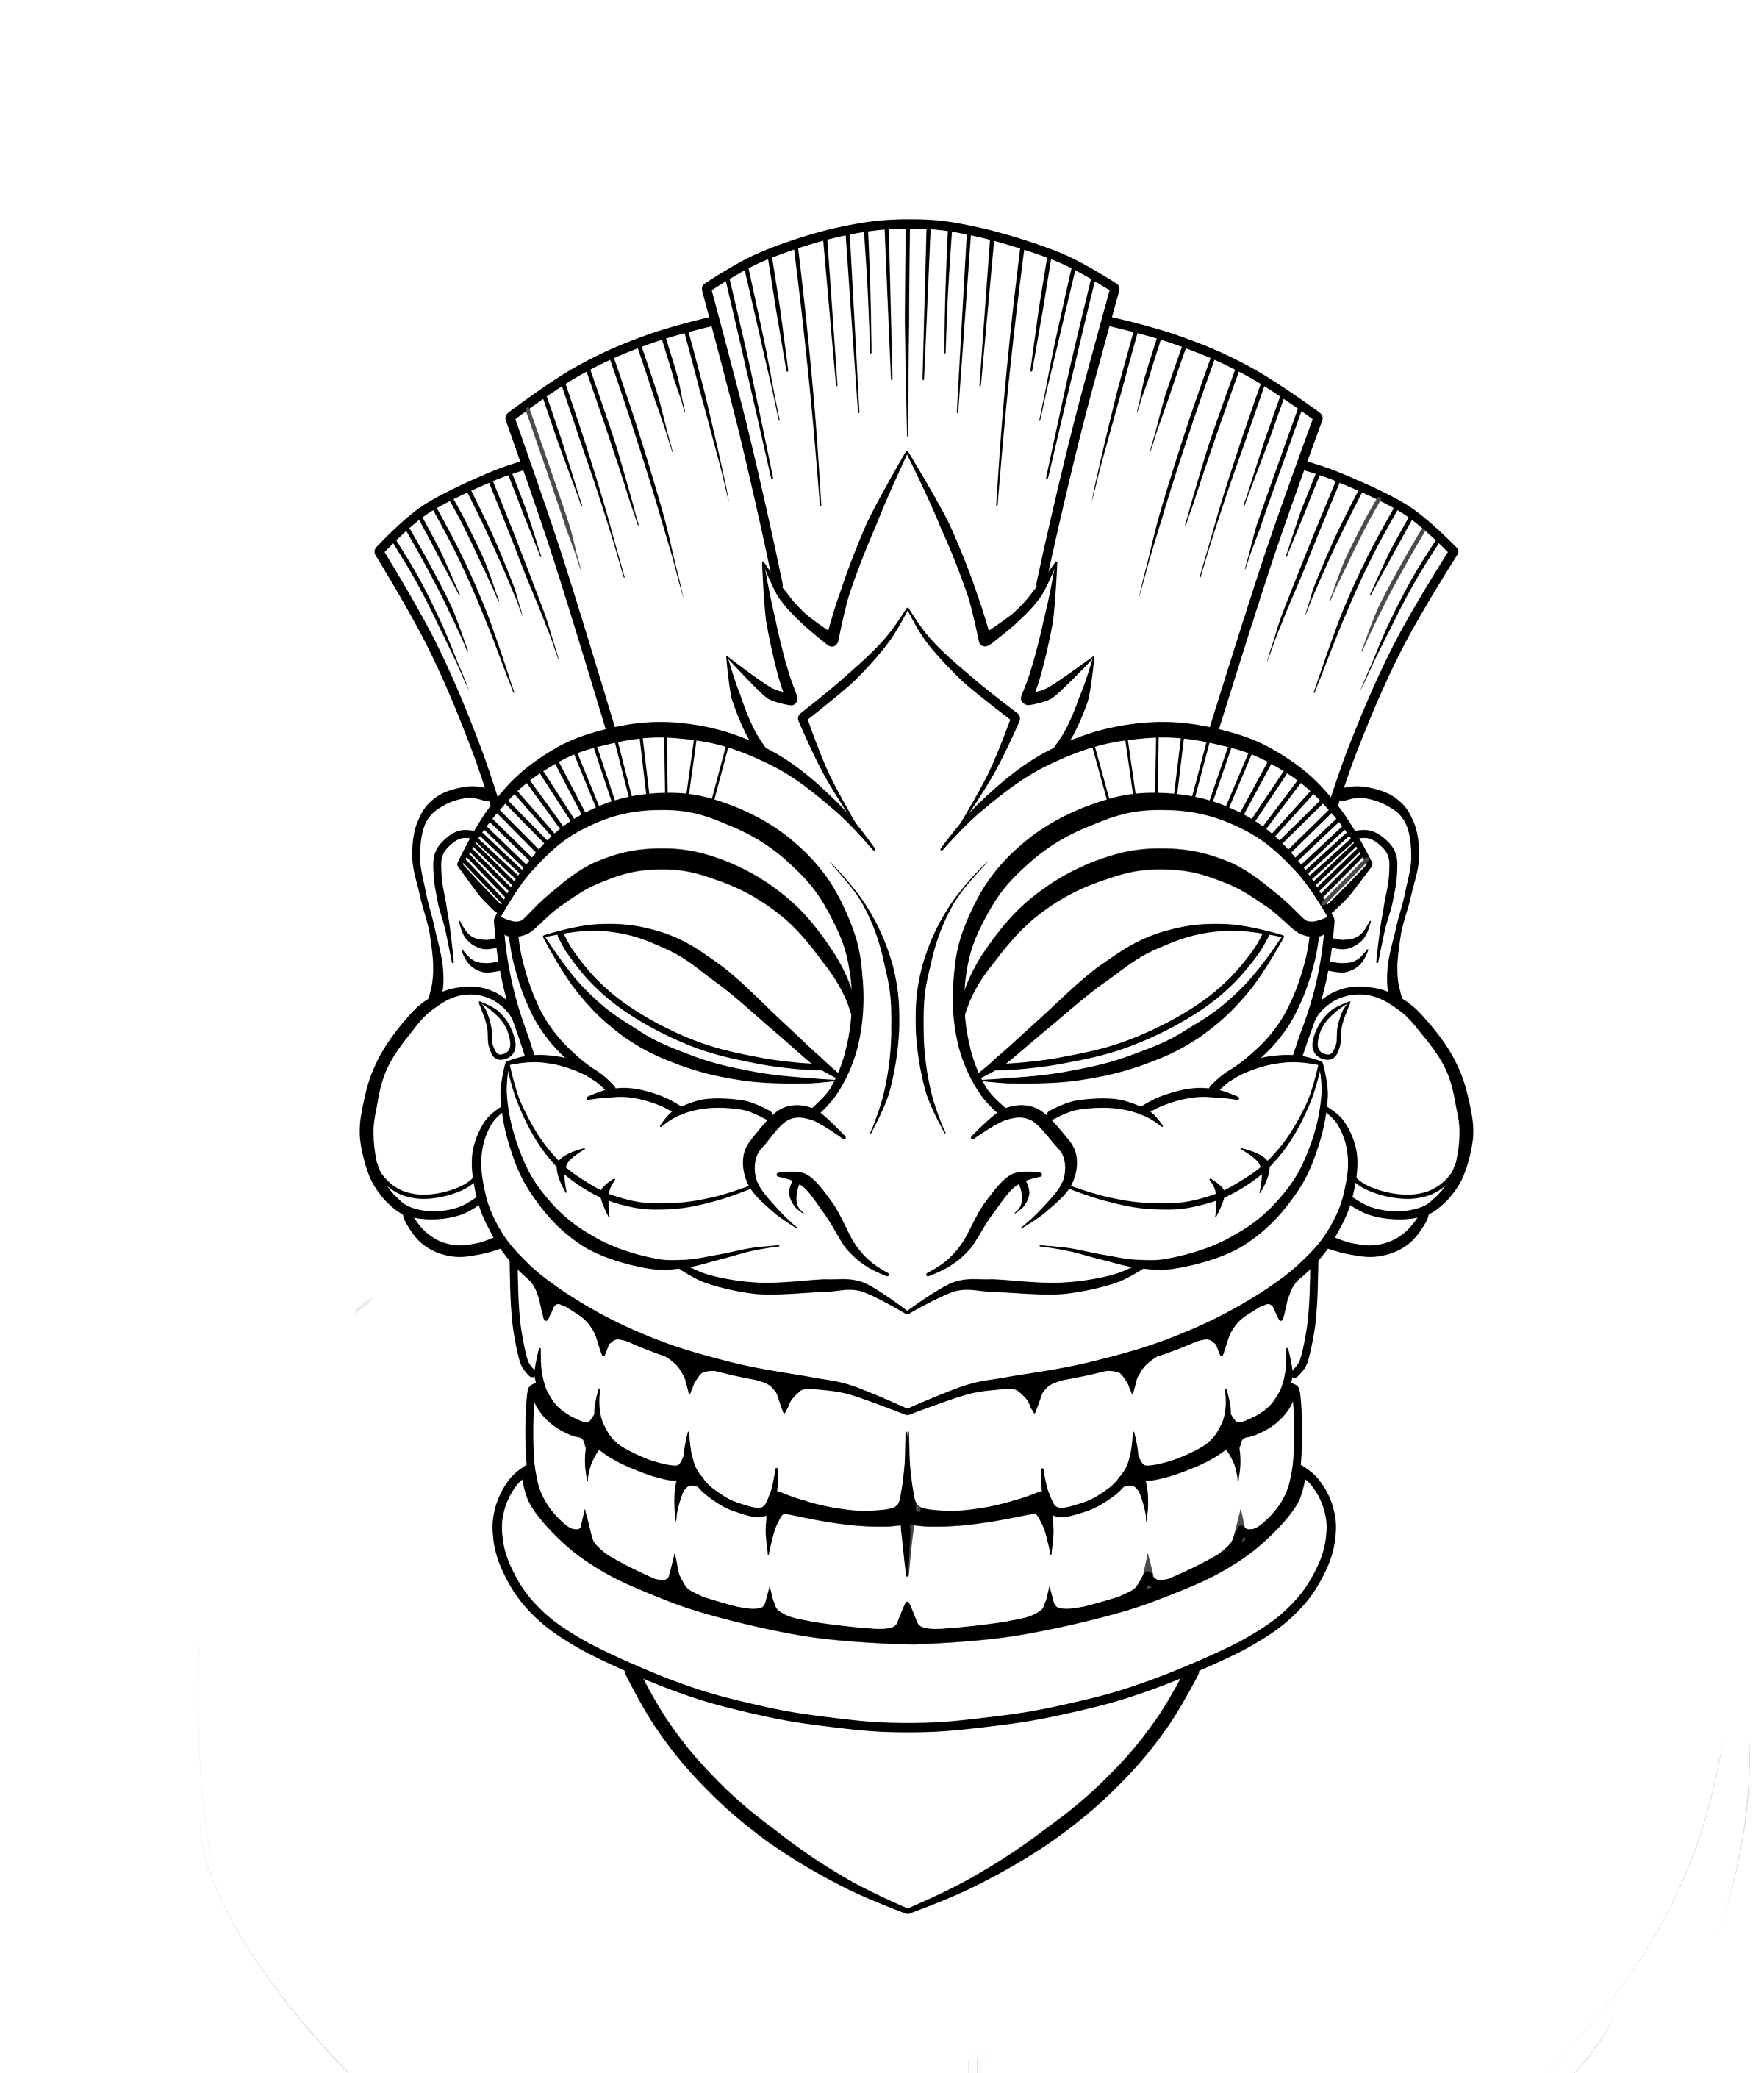 Coloring pages for bedroom - Tiki Mask Colouring Pages Lazy Town Kleurplaten Kleurboek